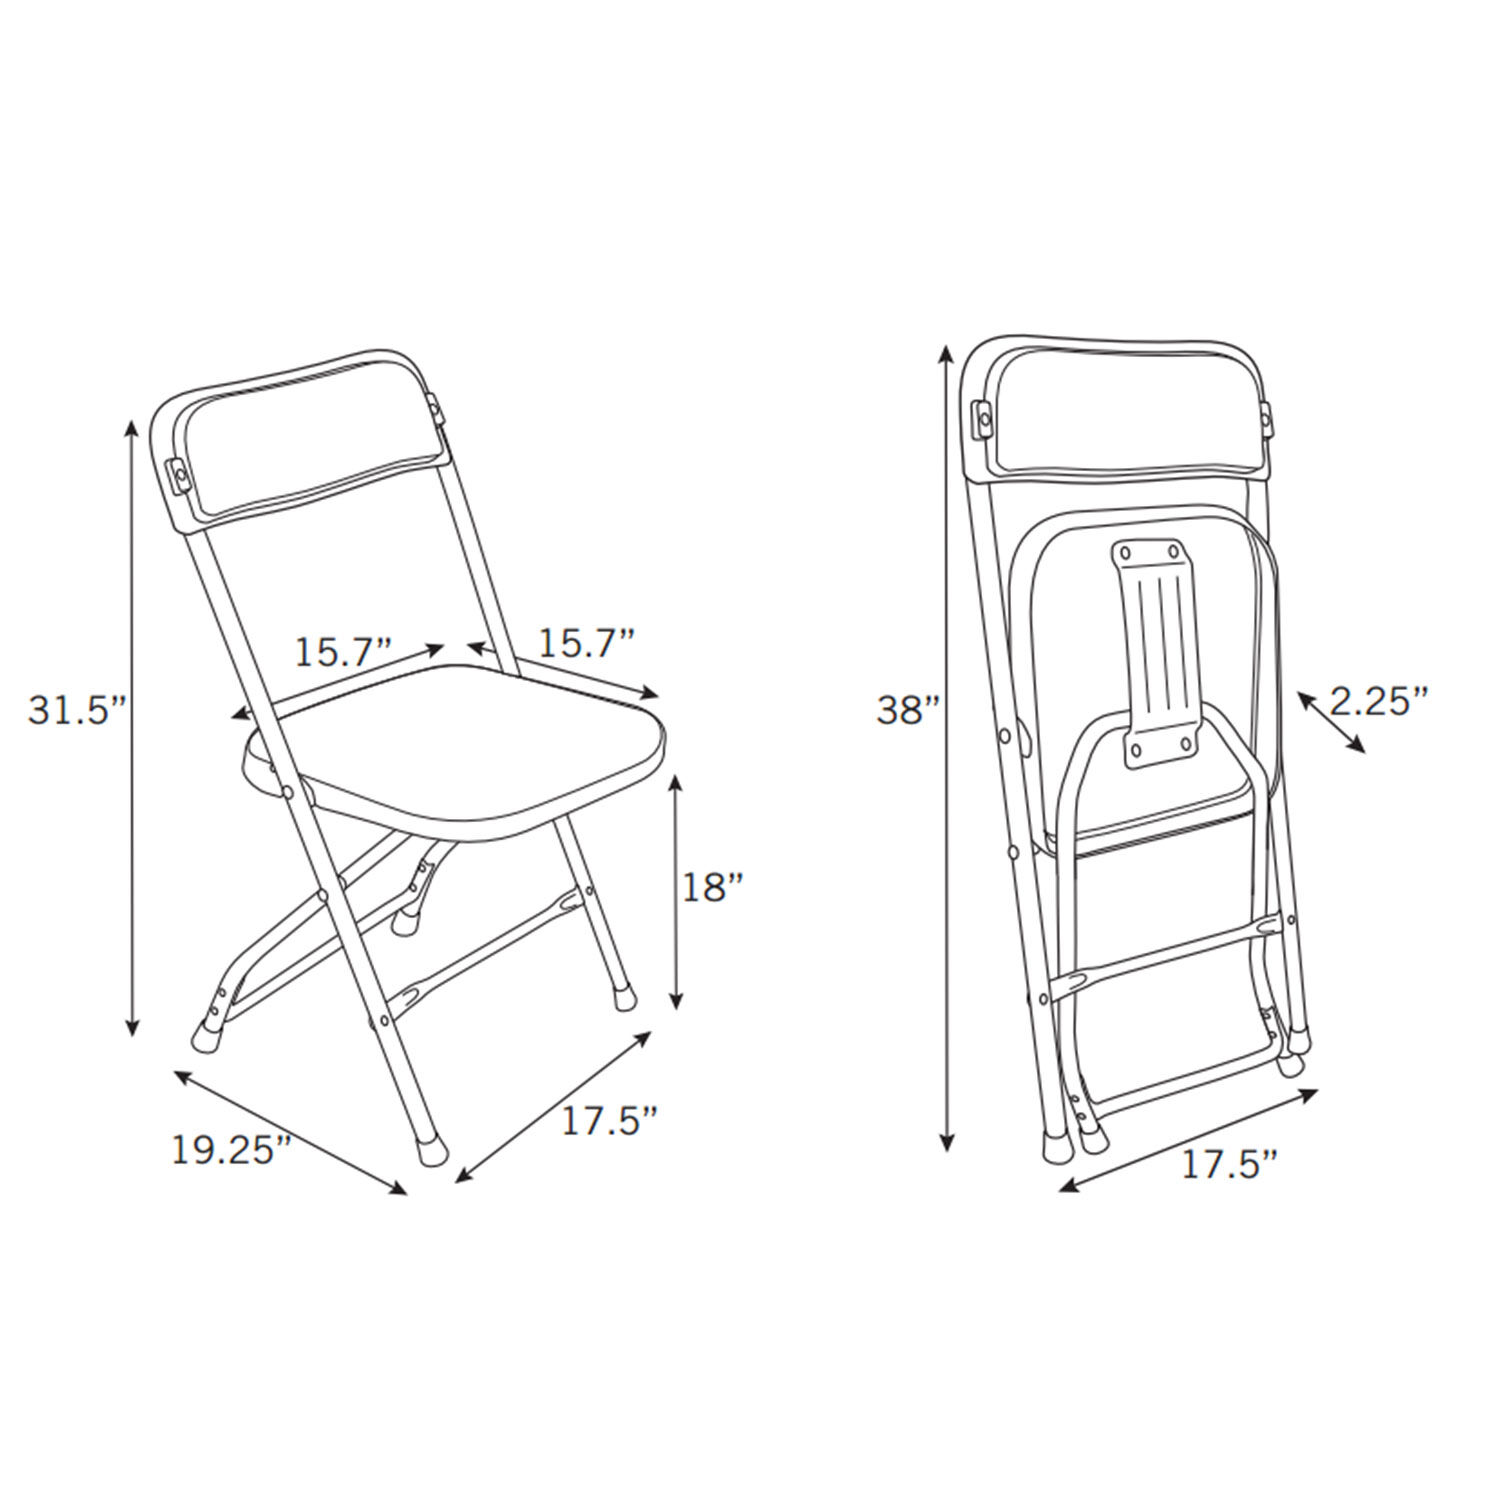 Chair dimensions - Samsonite 2200 Series Injection Mold Folding Chair 40 Case 10 41